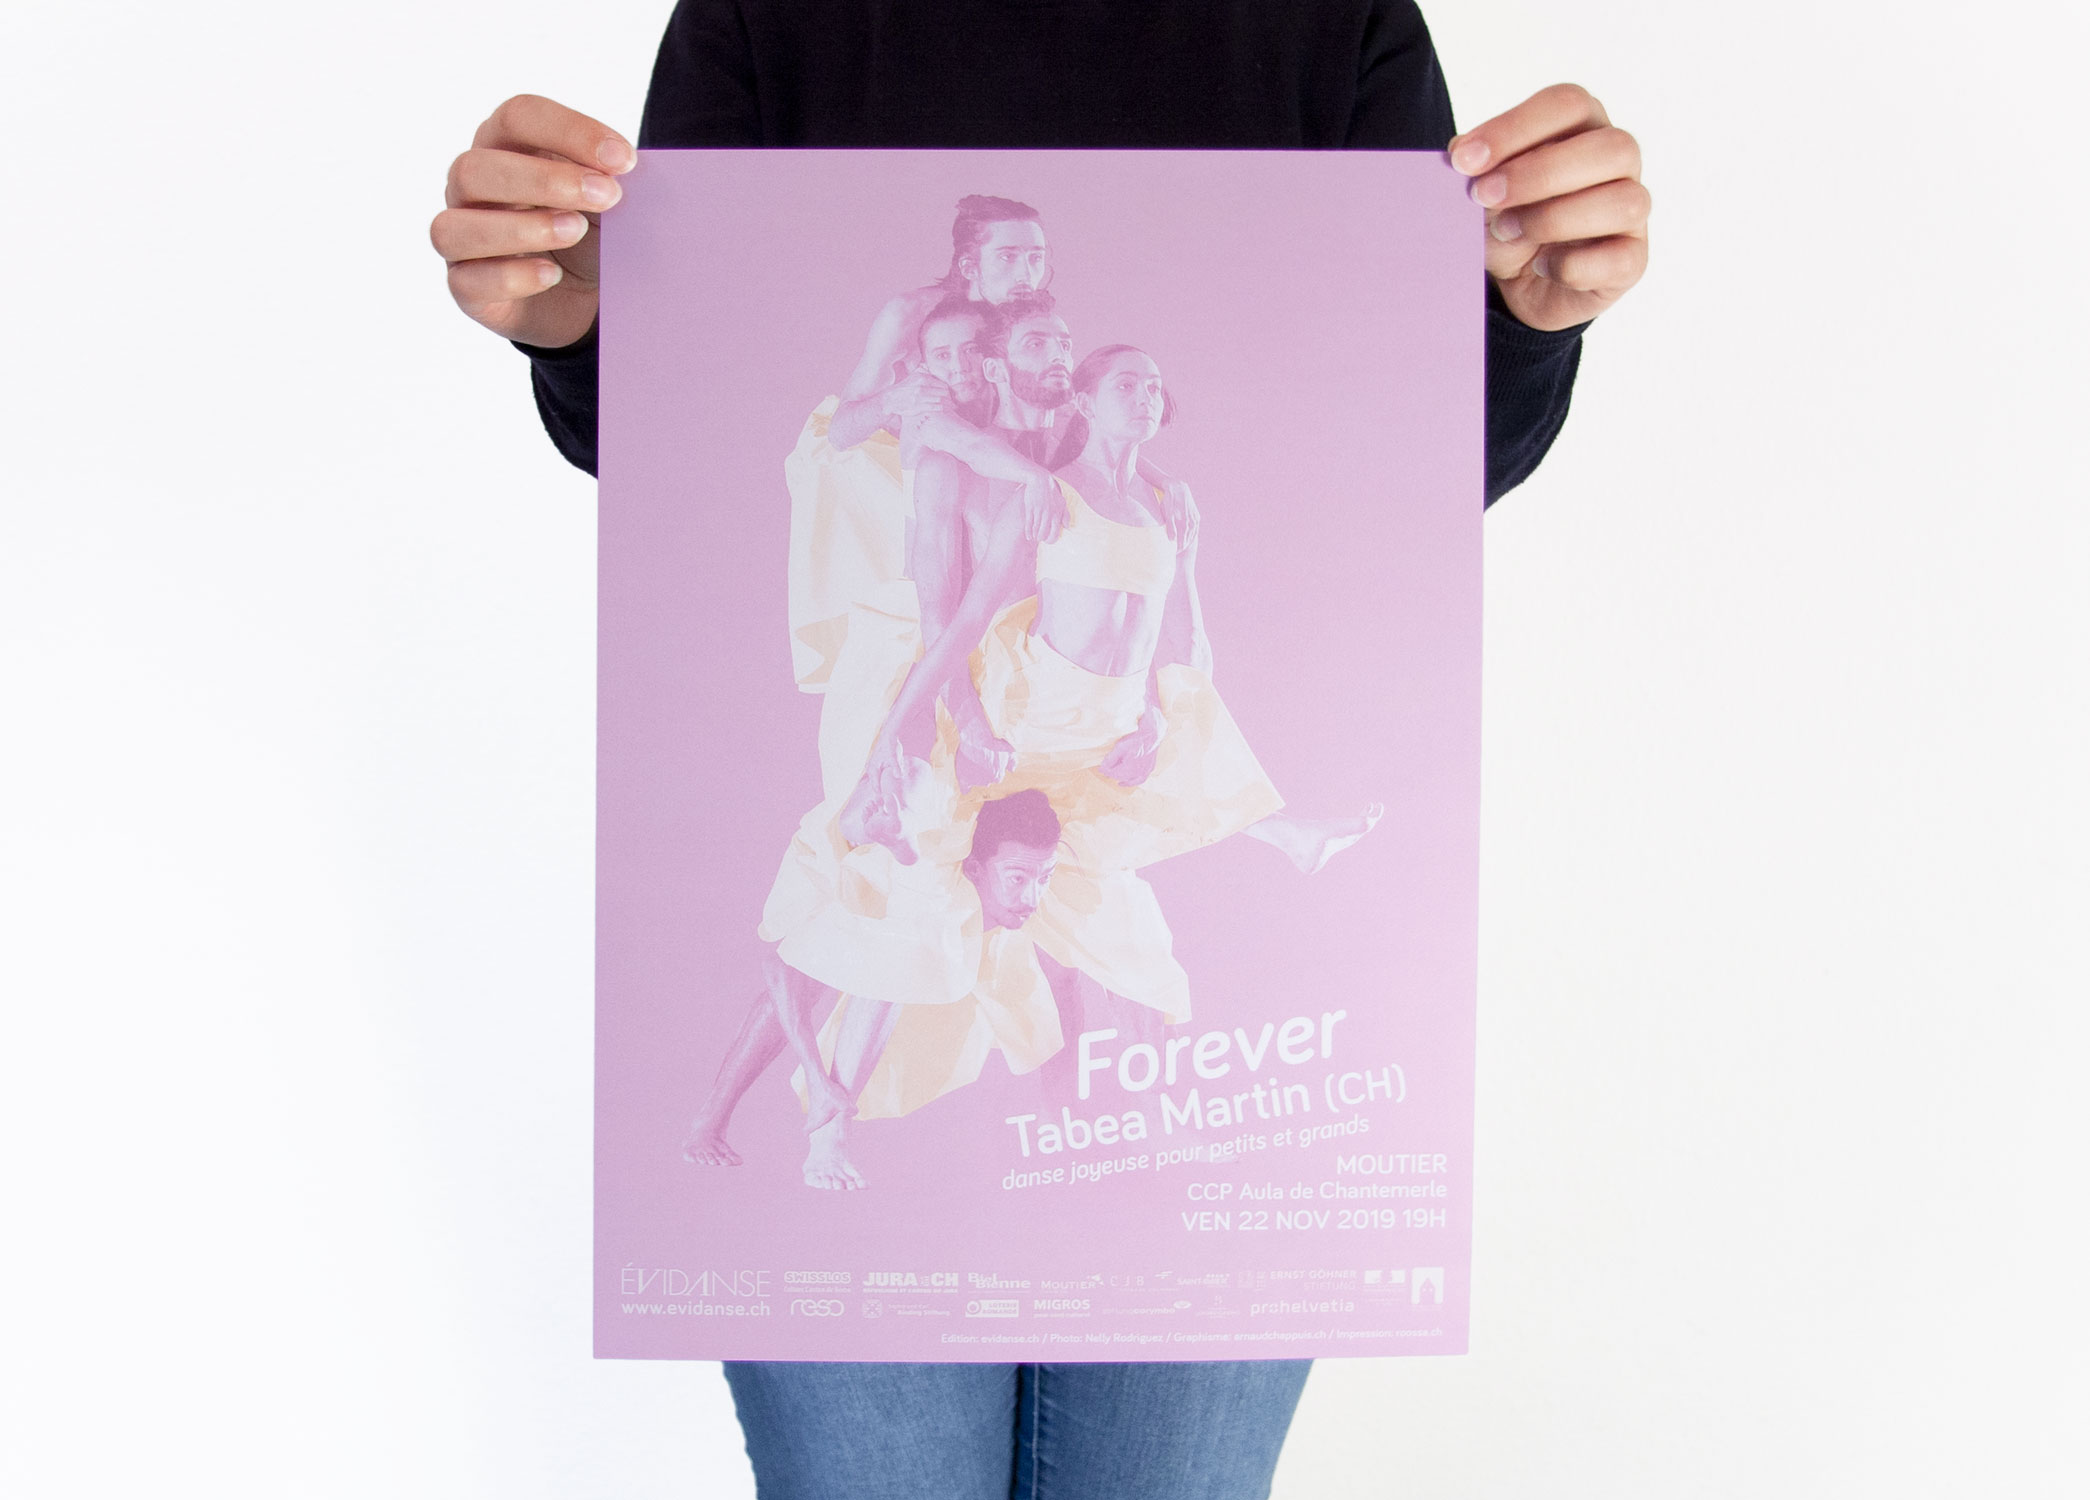 evidanse 2019-2020 affiche - Forever Tabea Martin - édition evidanse.ch - crédit photo Nelly Rodriguez - impression roossa roossa.ch - graphisme arnaud chappuis